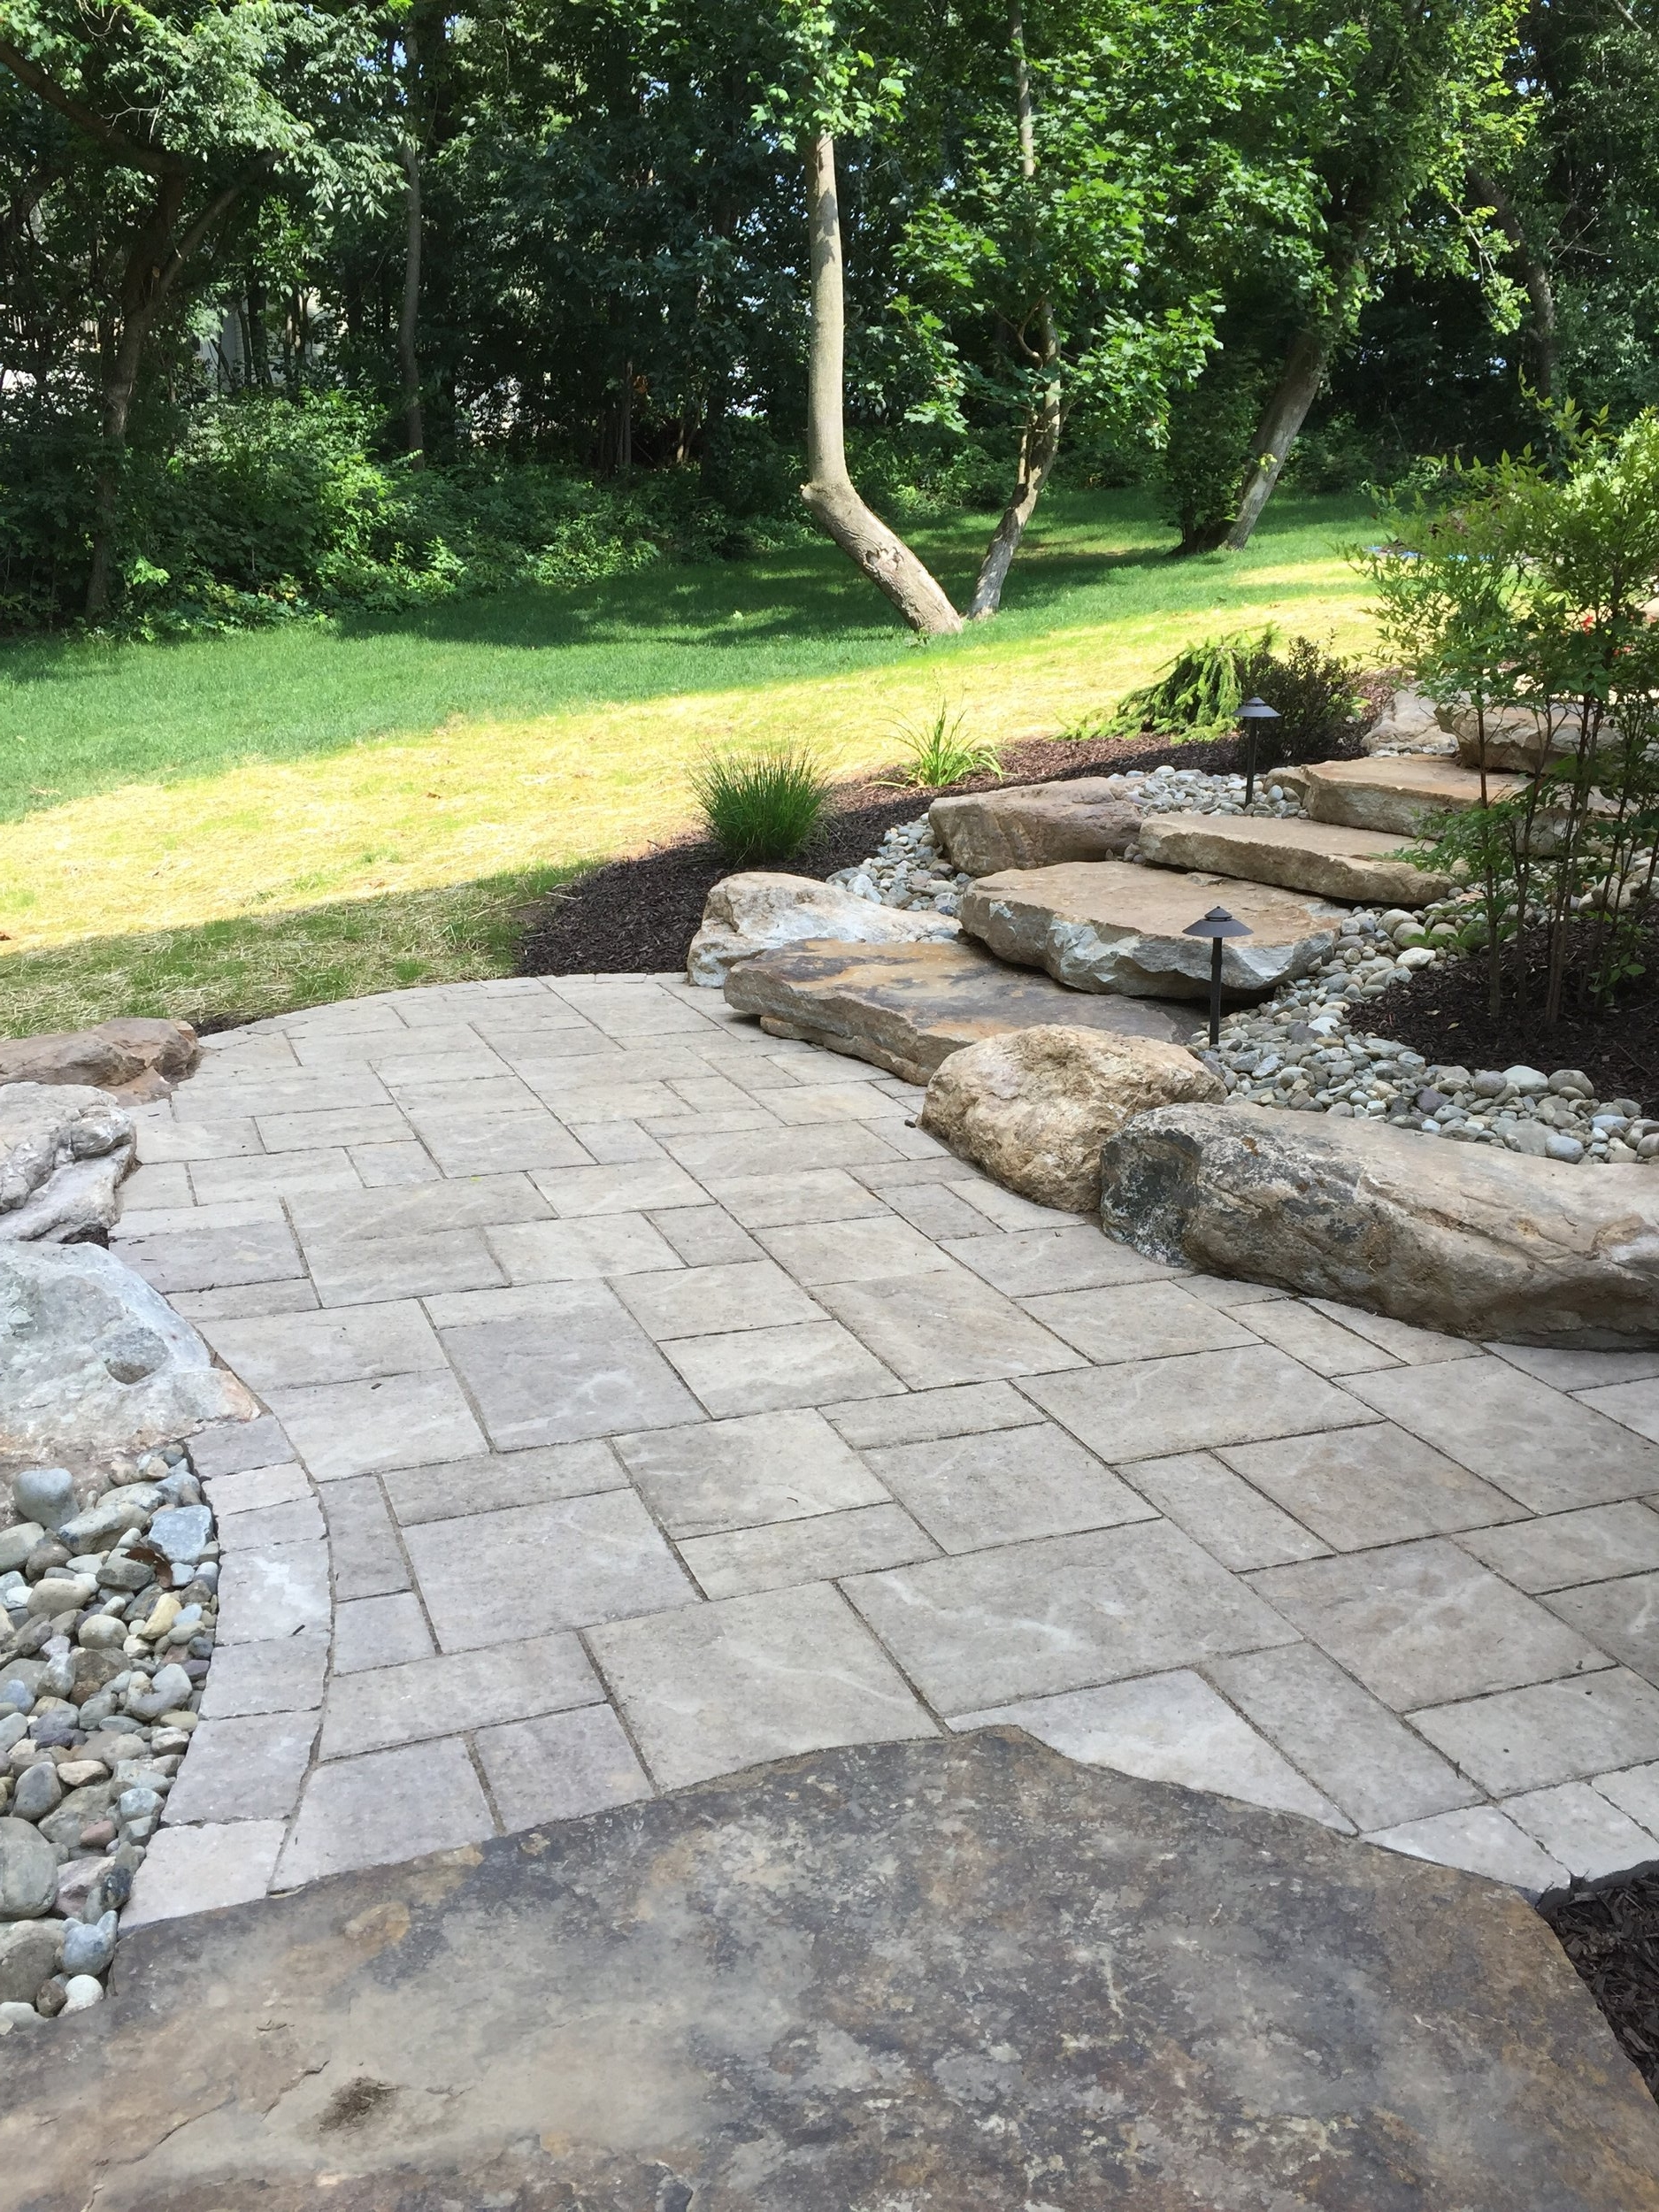 Top landscape contractor company inAllentown, PA